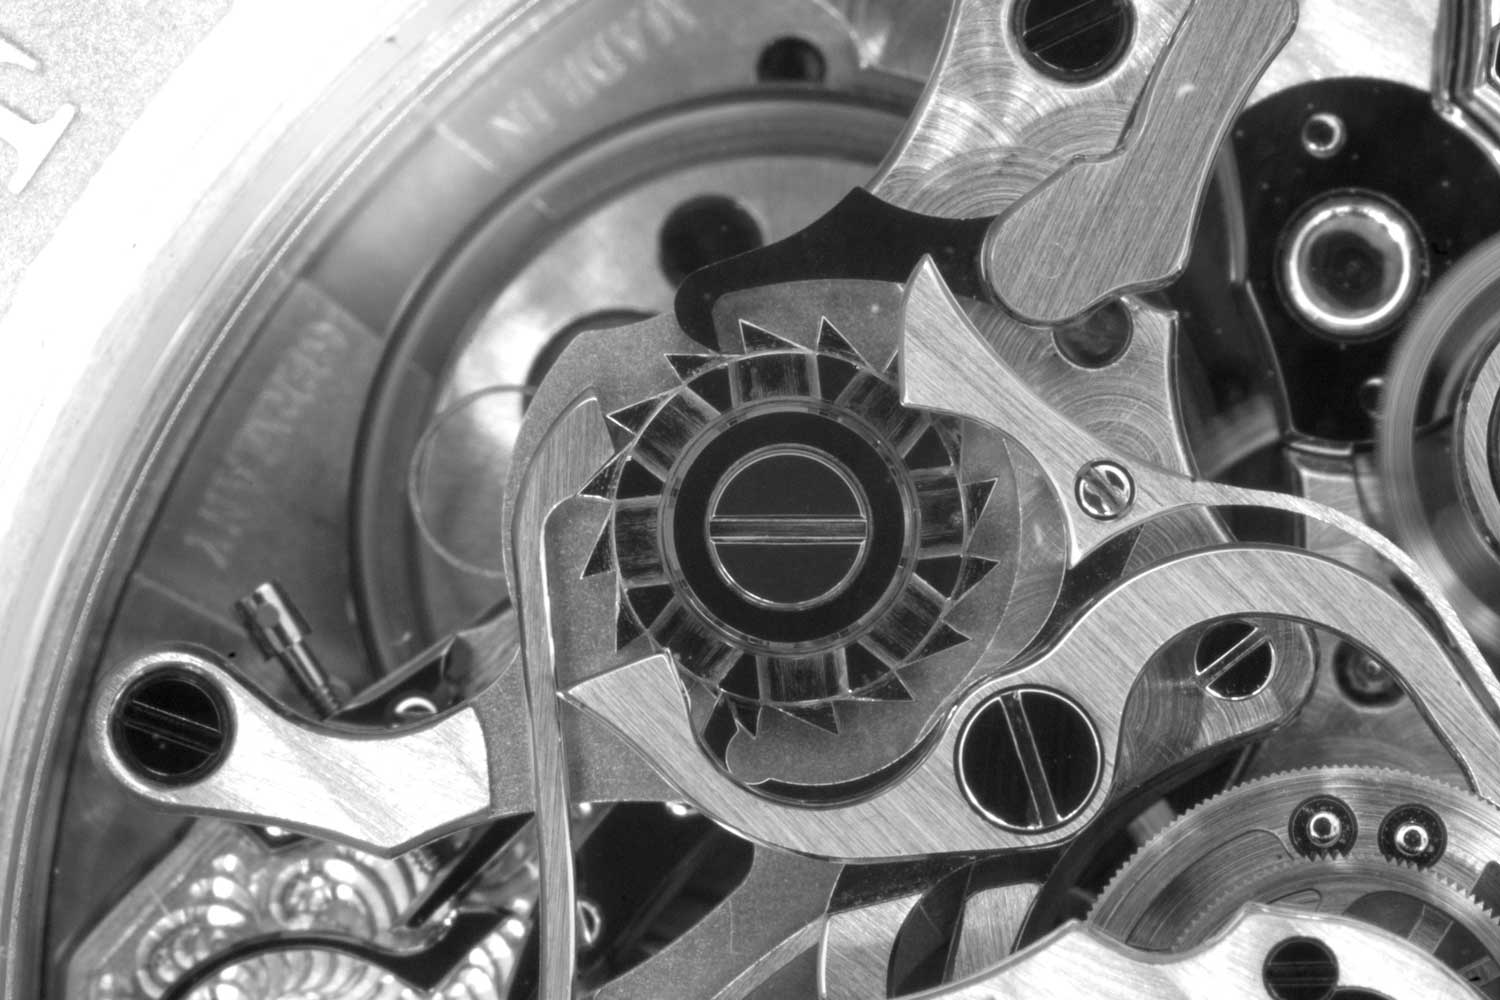 A feast for the eyes of horology buffs: the movement of the Double Split Chronograph exhibits peerless craftsmanship